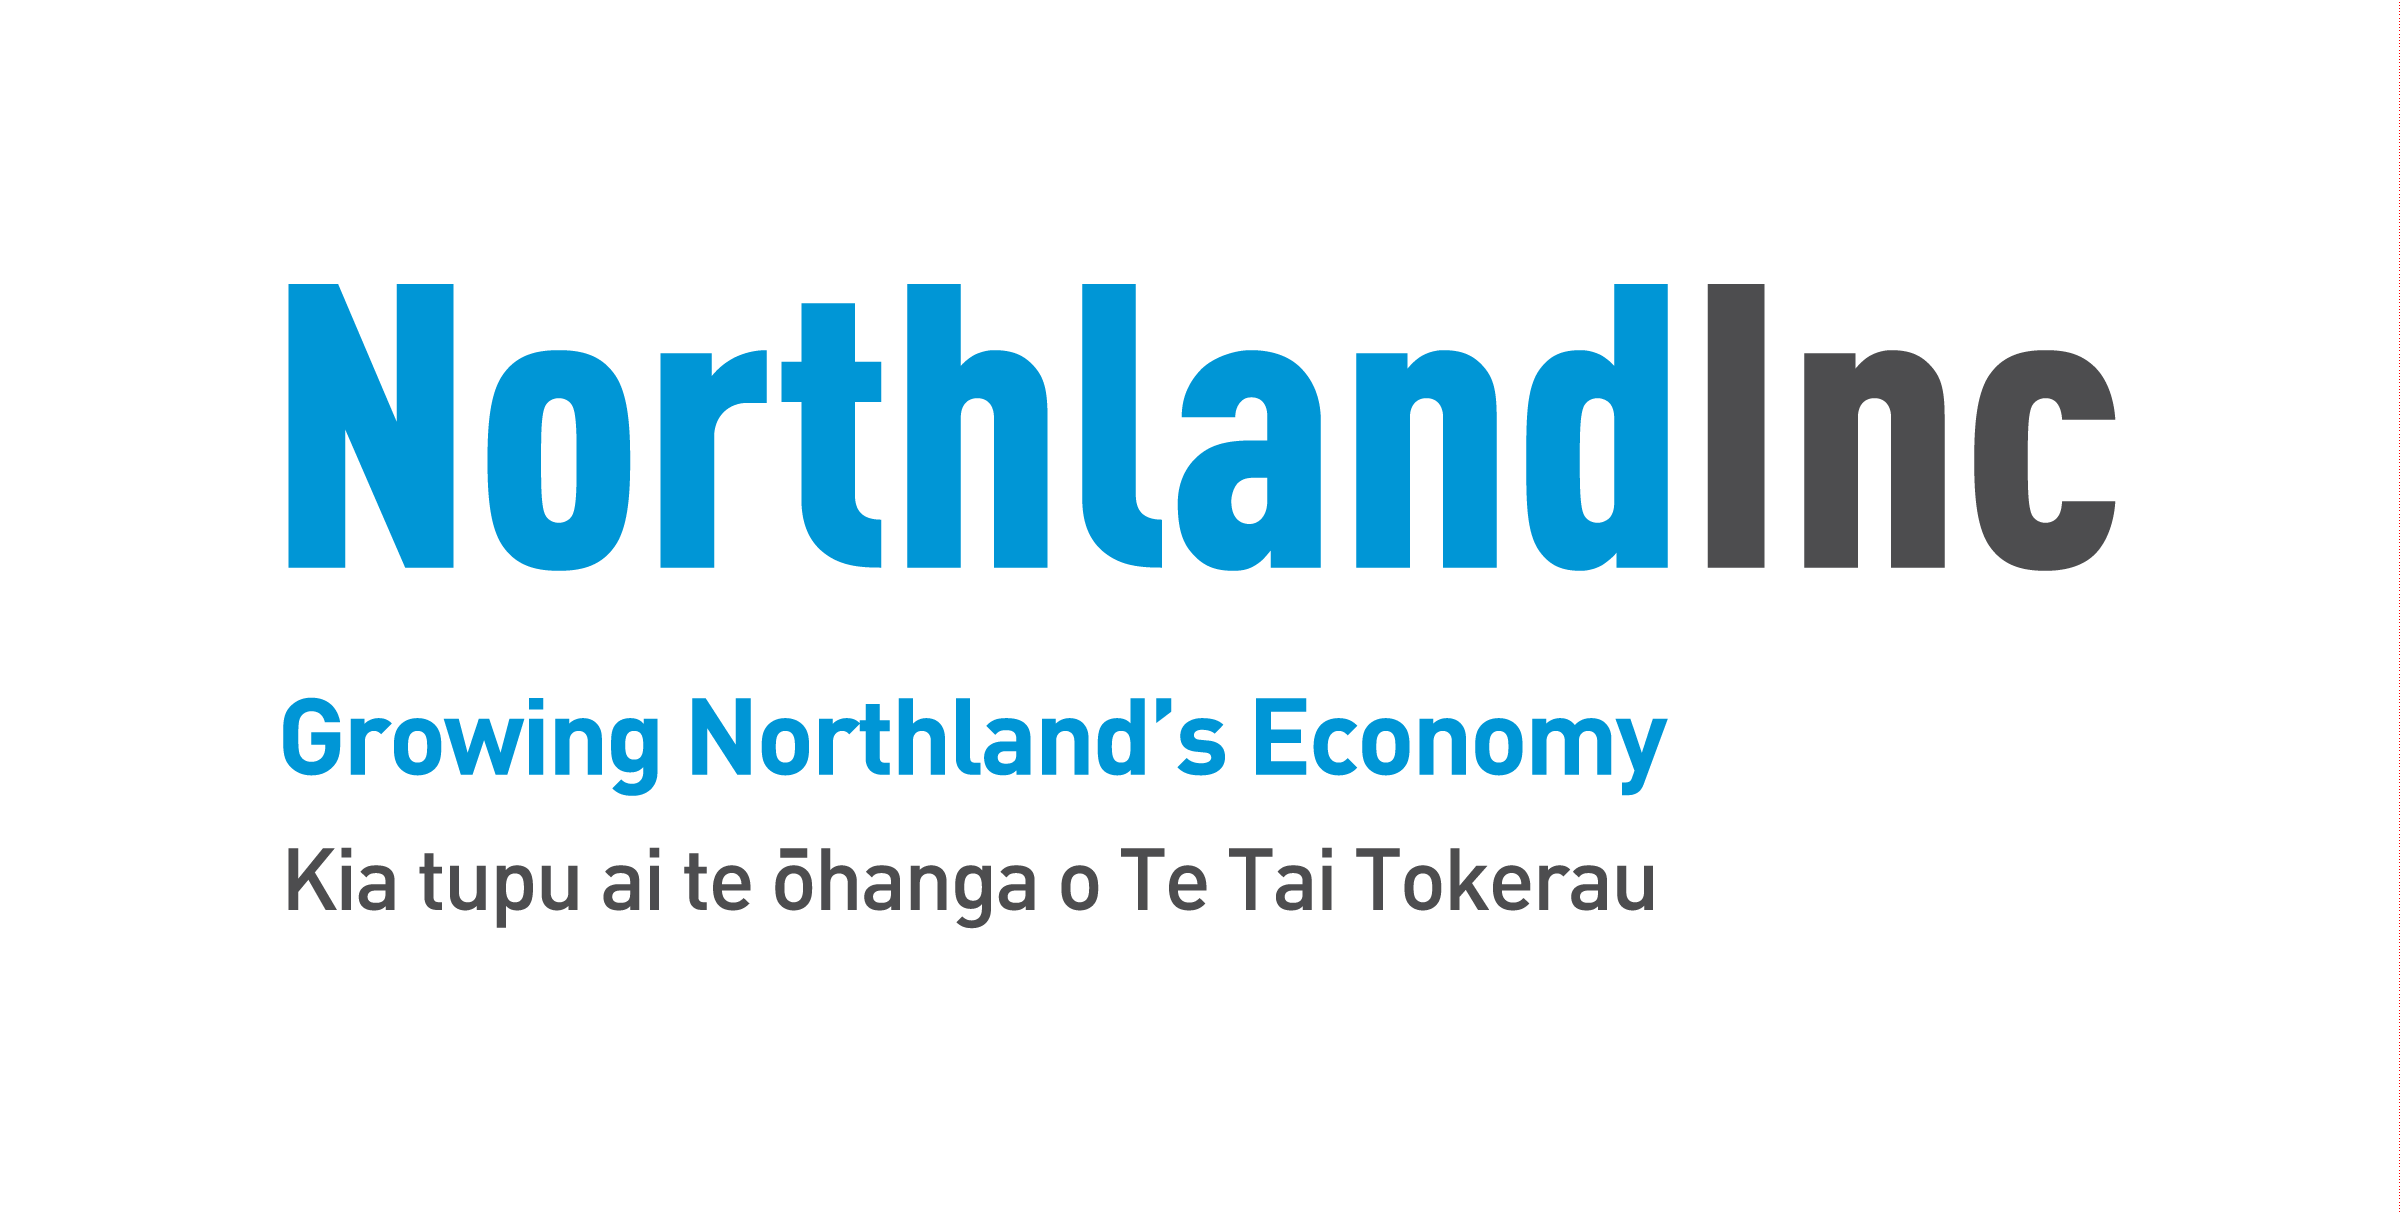 Northland is one of the most prosperous regions in New Zealand delivering employment ...  read more